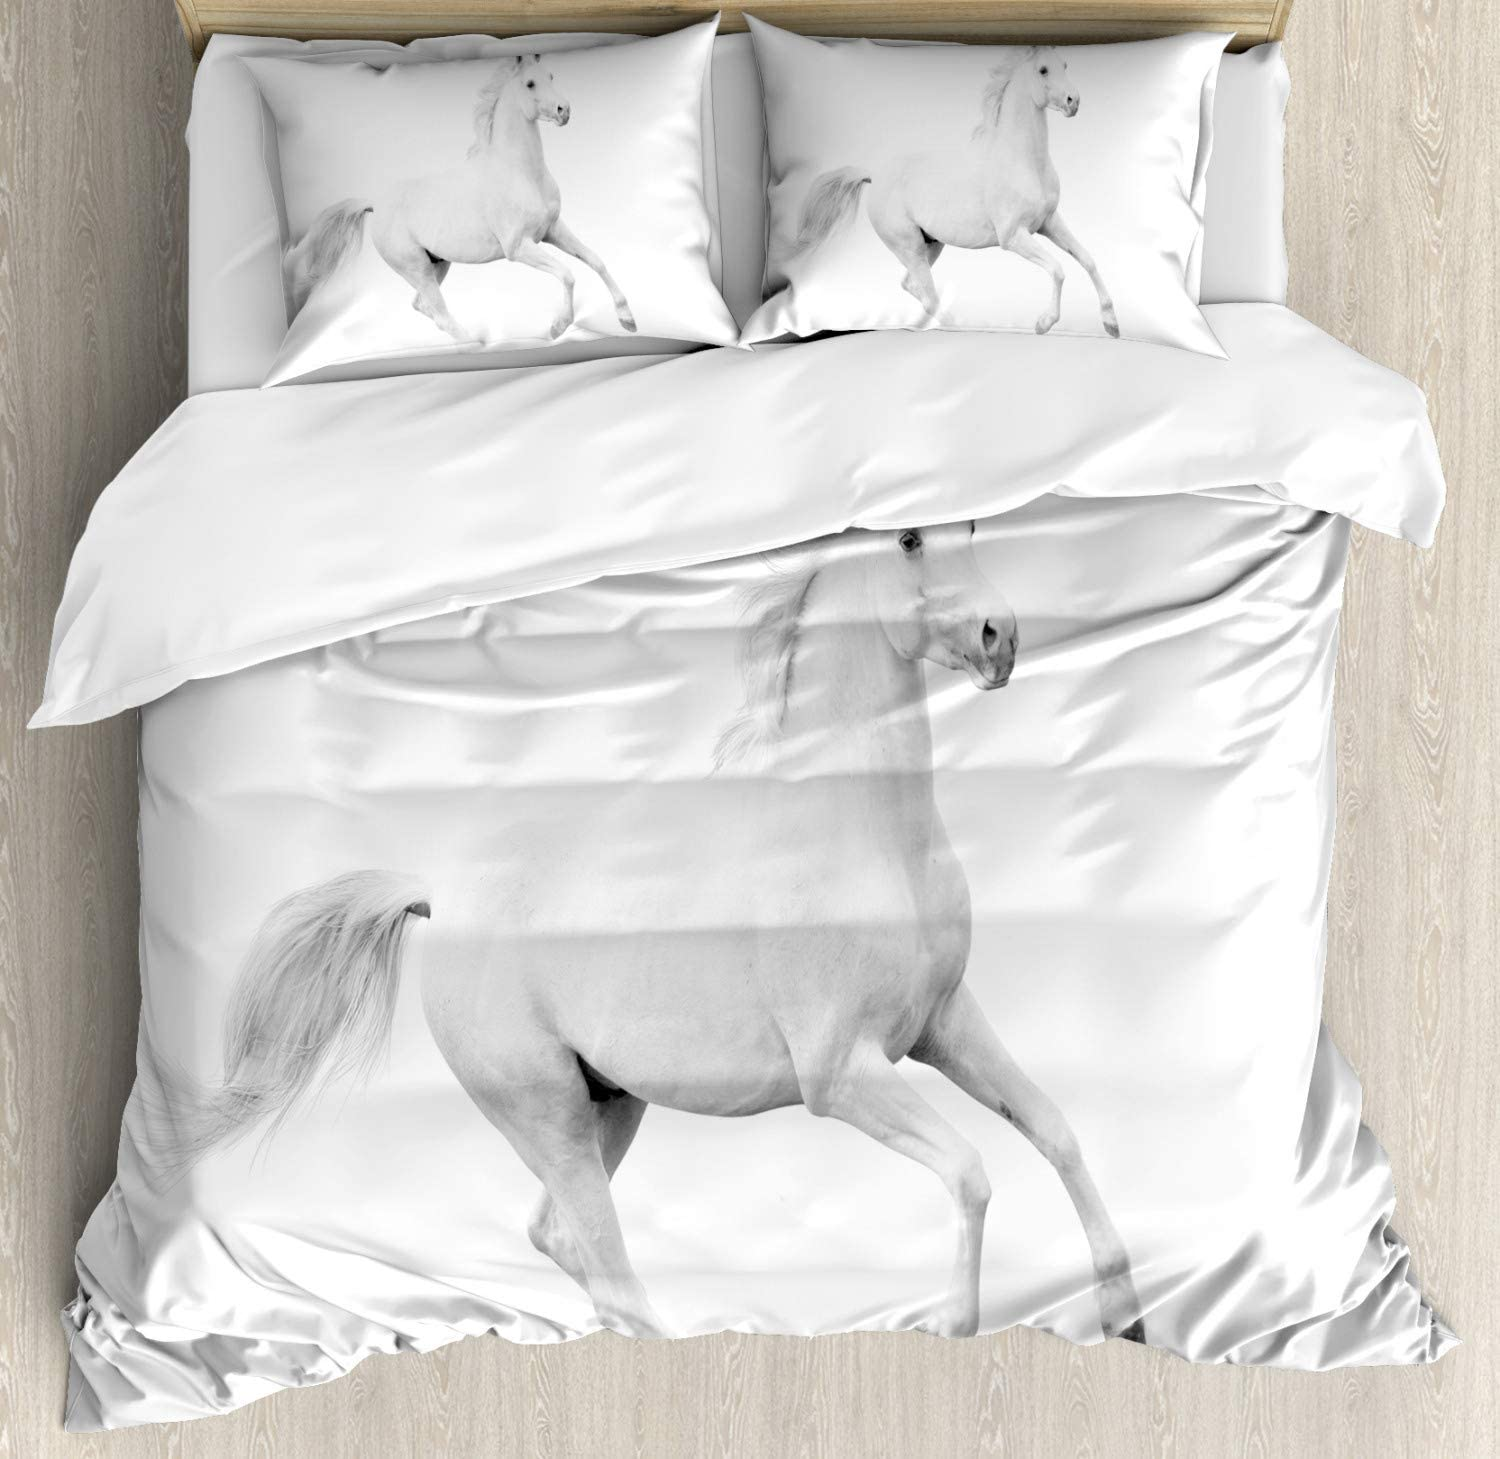 Ambesonne Black and White Duvet Cover Set, White Stallion Running Horse Galloping Motion Speed Print, Decorative 3 Piece Bedding Set with 2 Pillow Shams, King Size, White Black